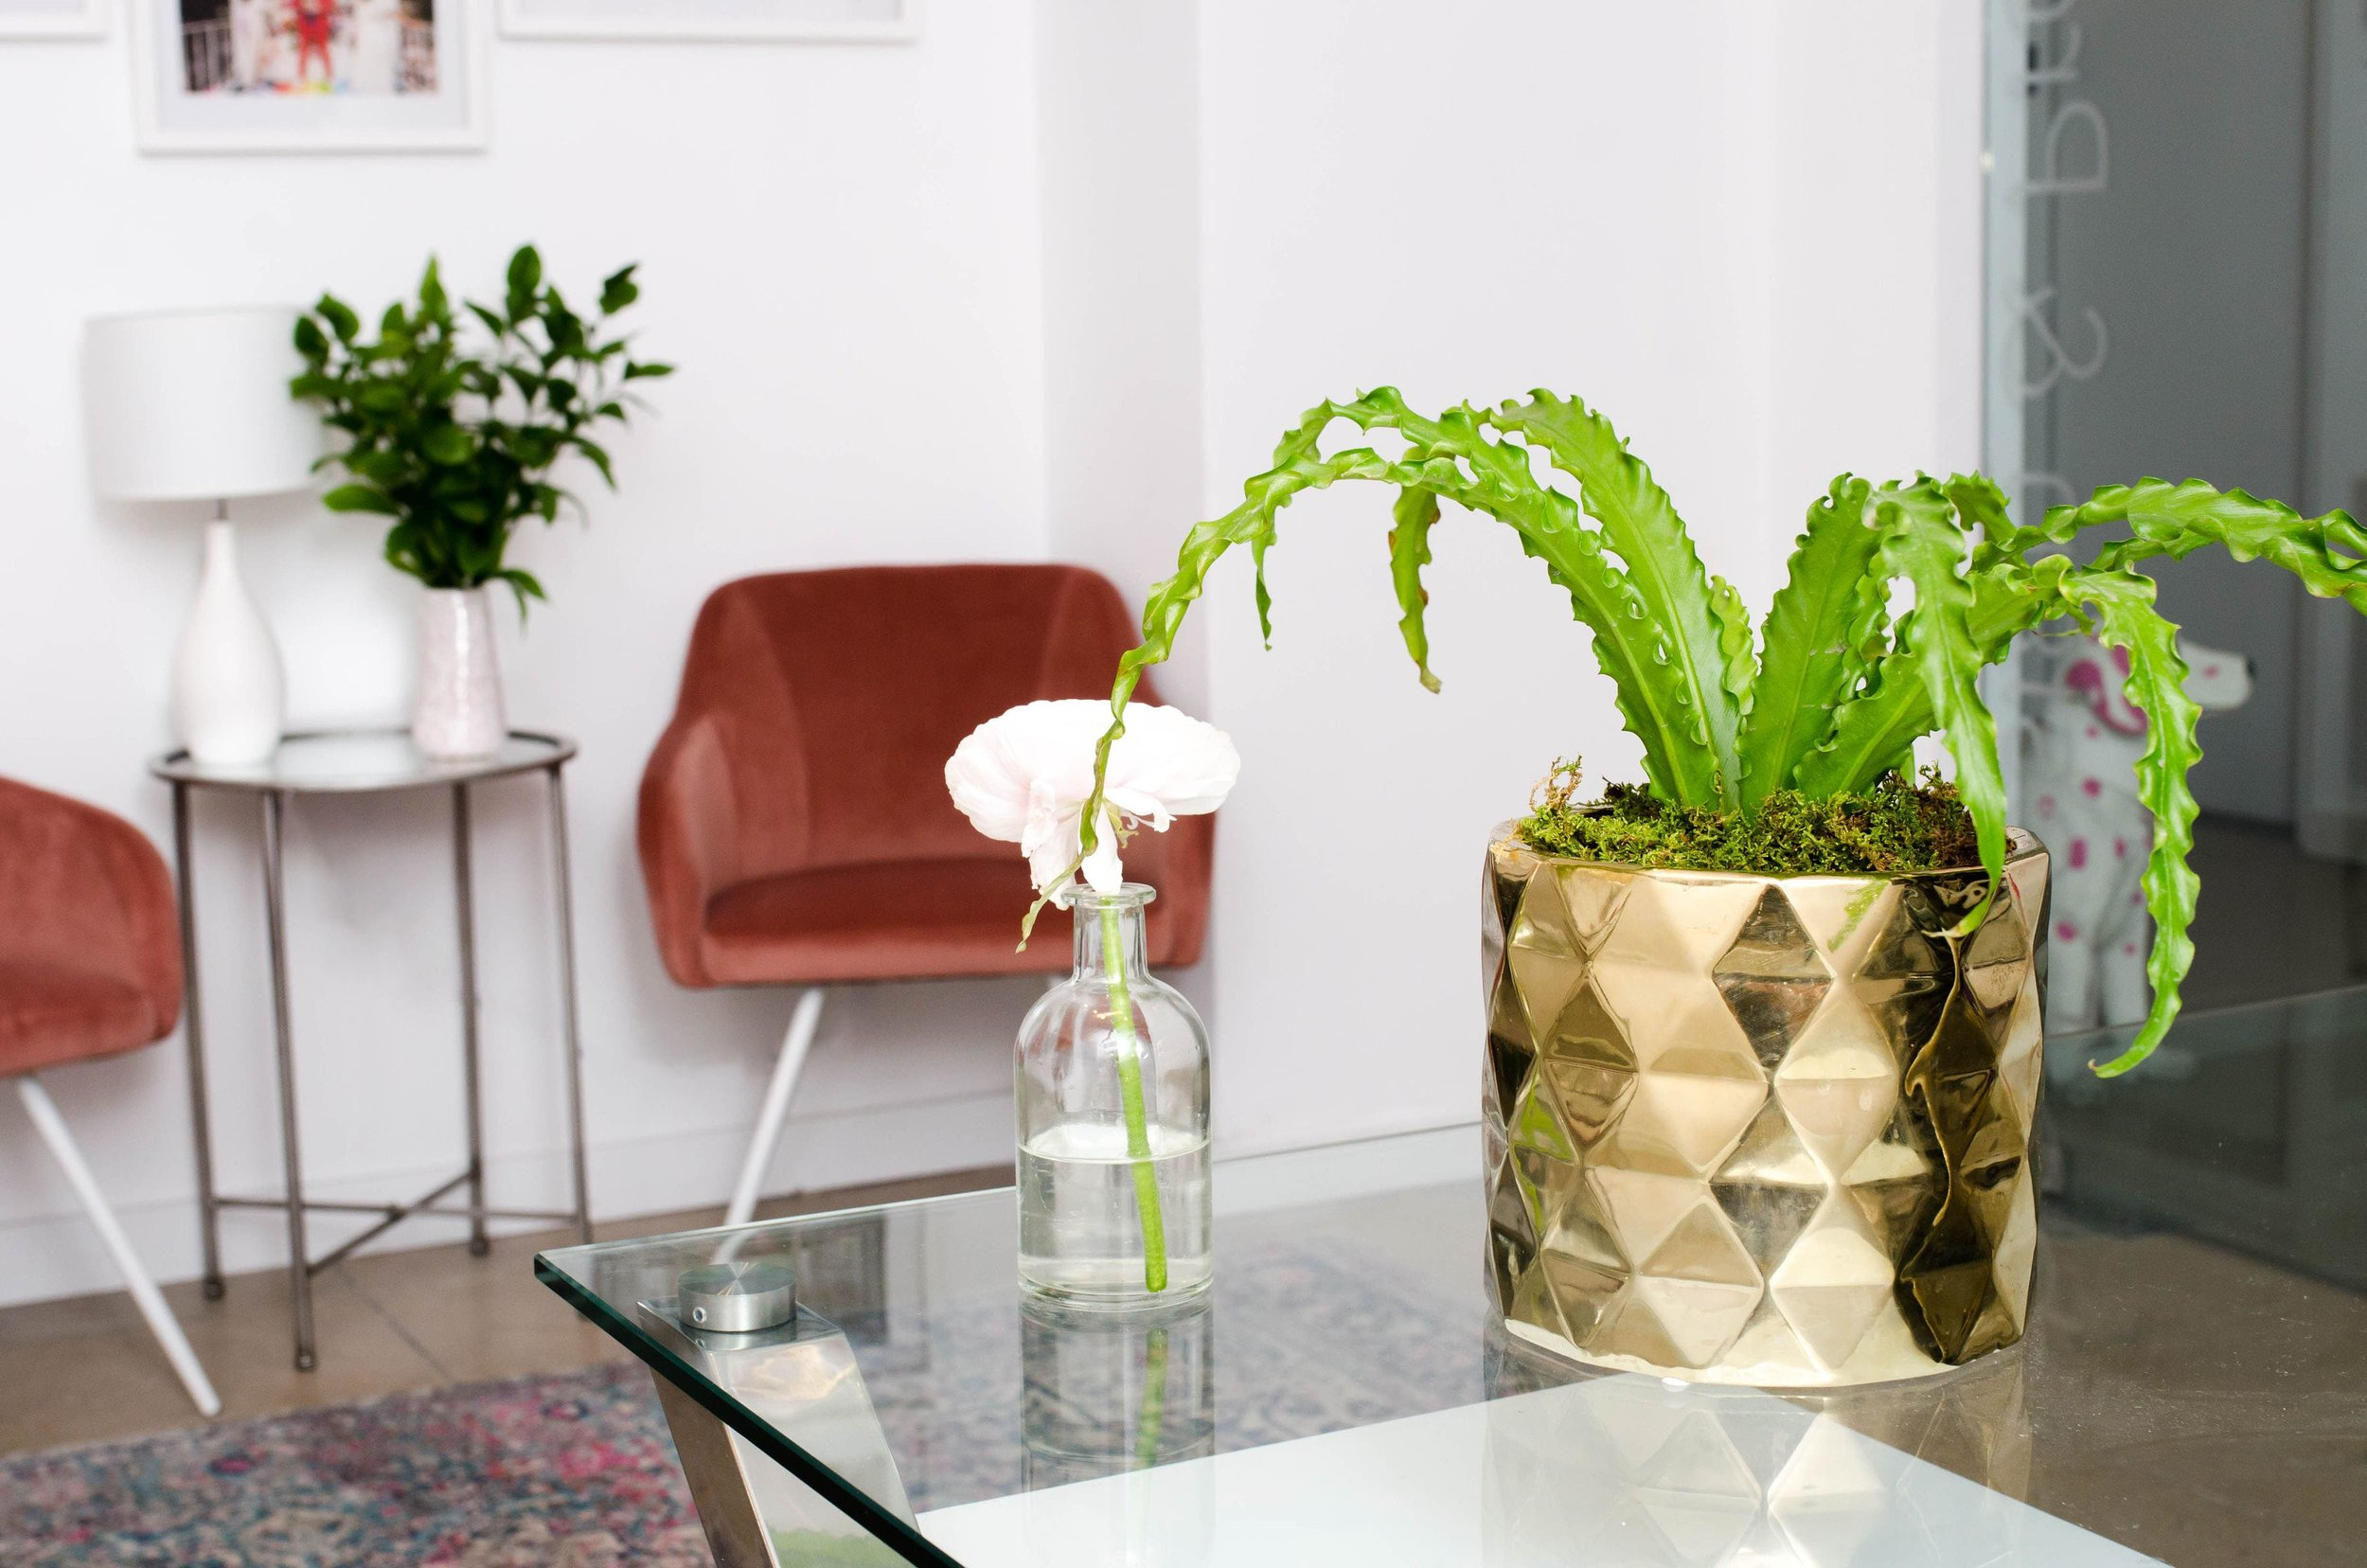 NEW - OFFICE - SPACE - MANHATTAN - COOL - OPEN - RECEPTION - PLANTS - B FLORAL